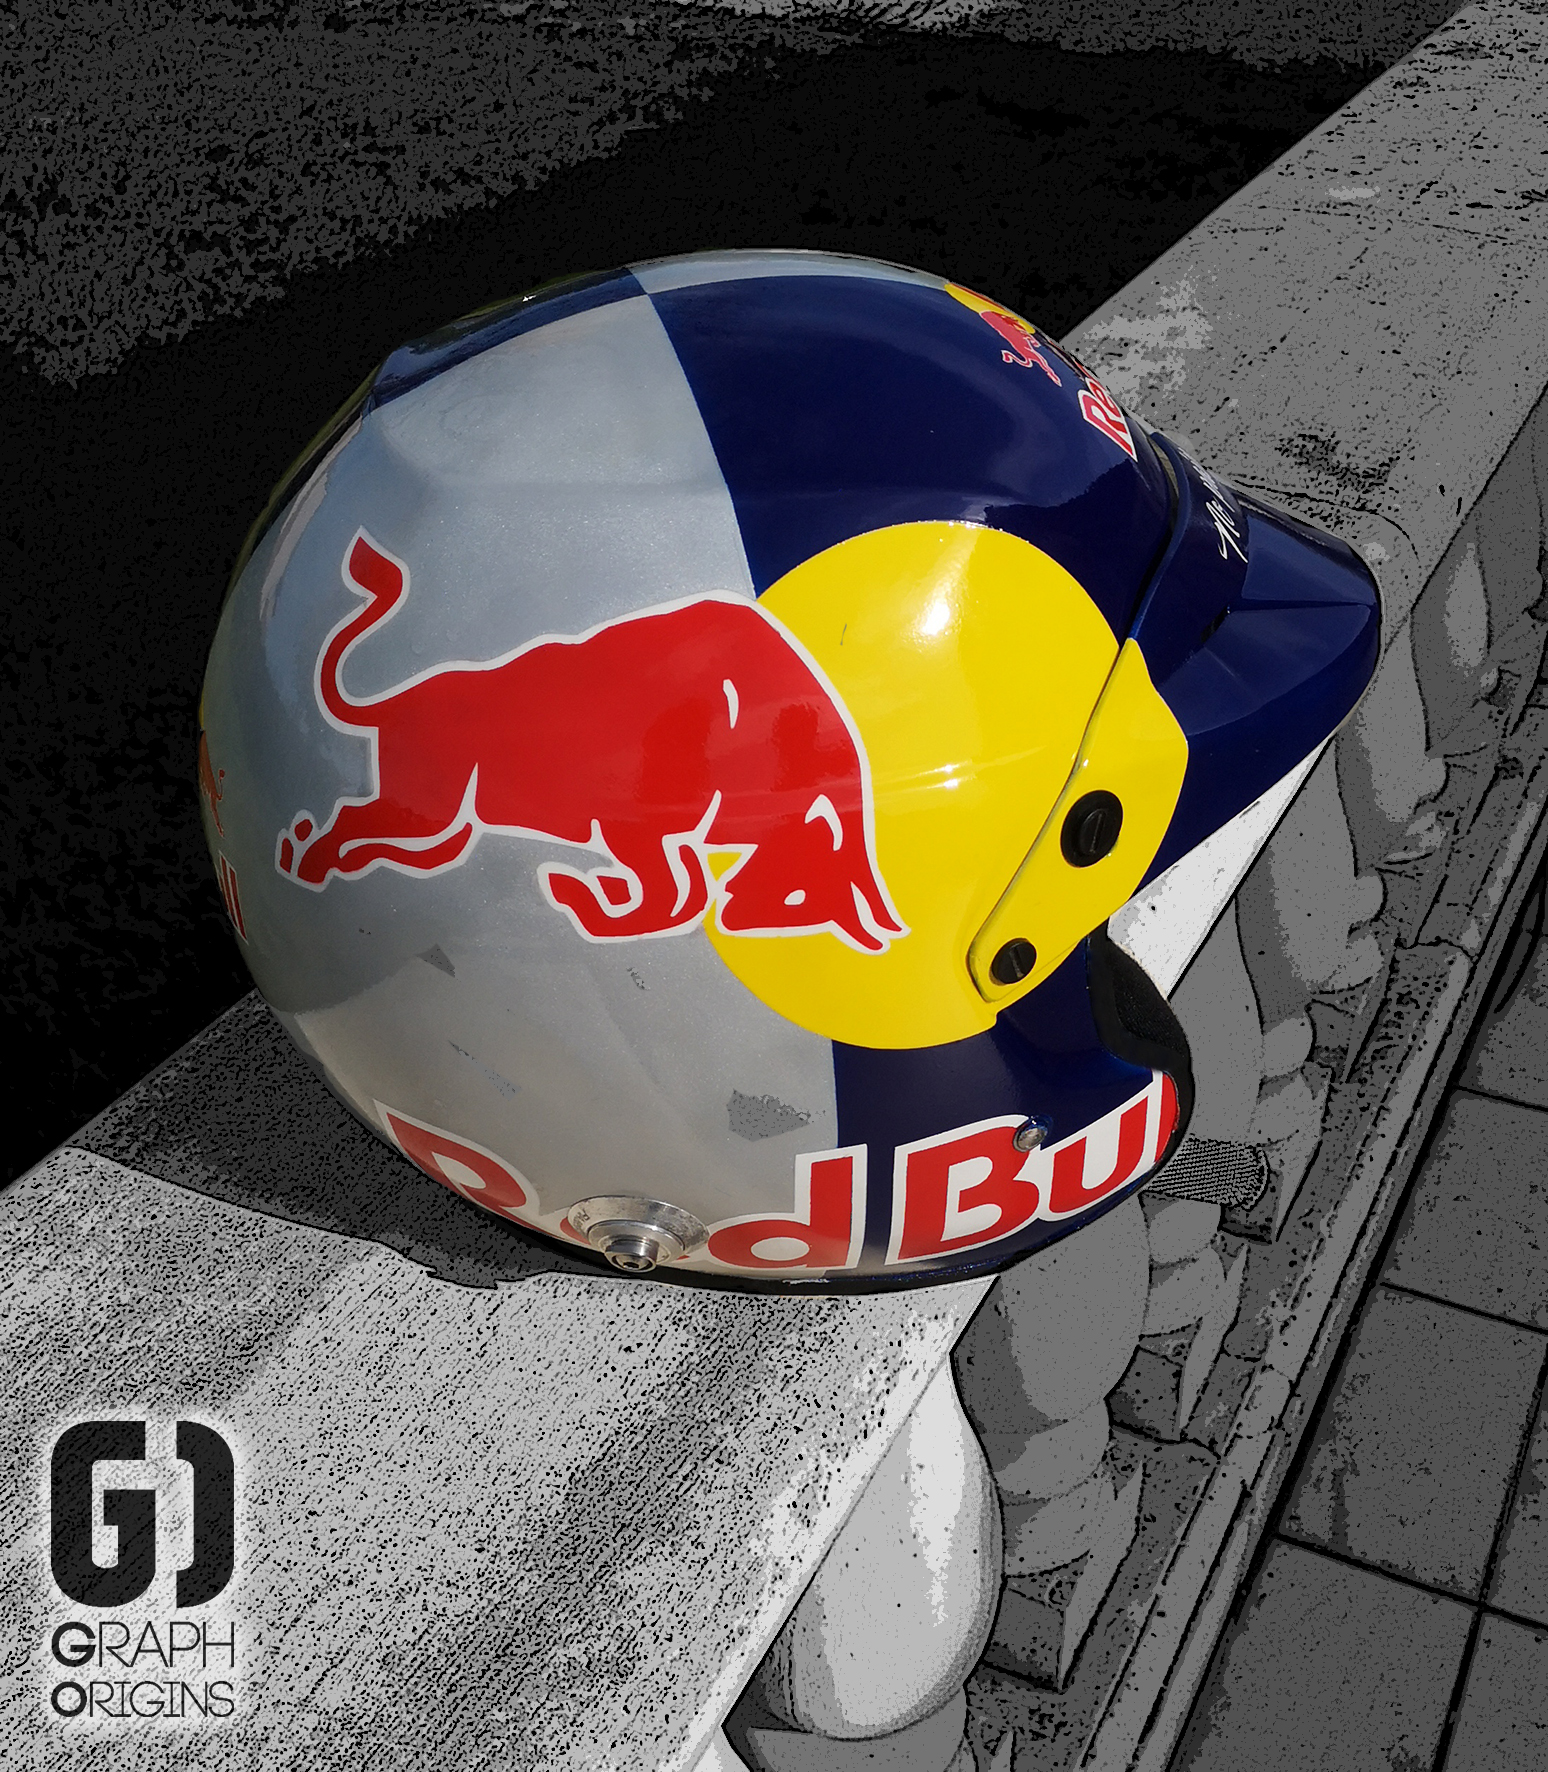 Casque Red Bull custom graph origins